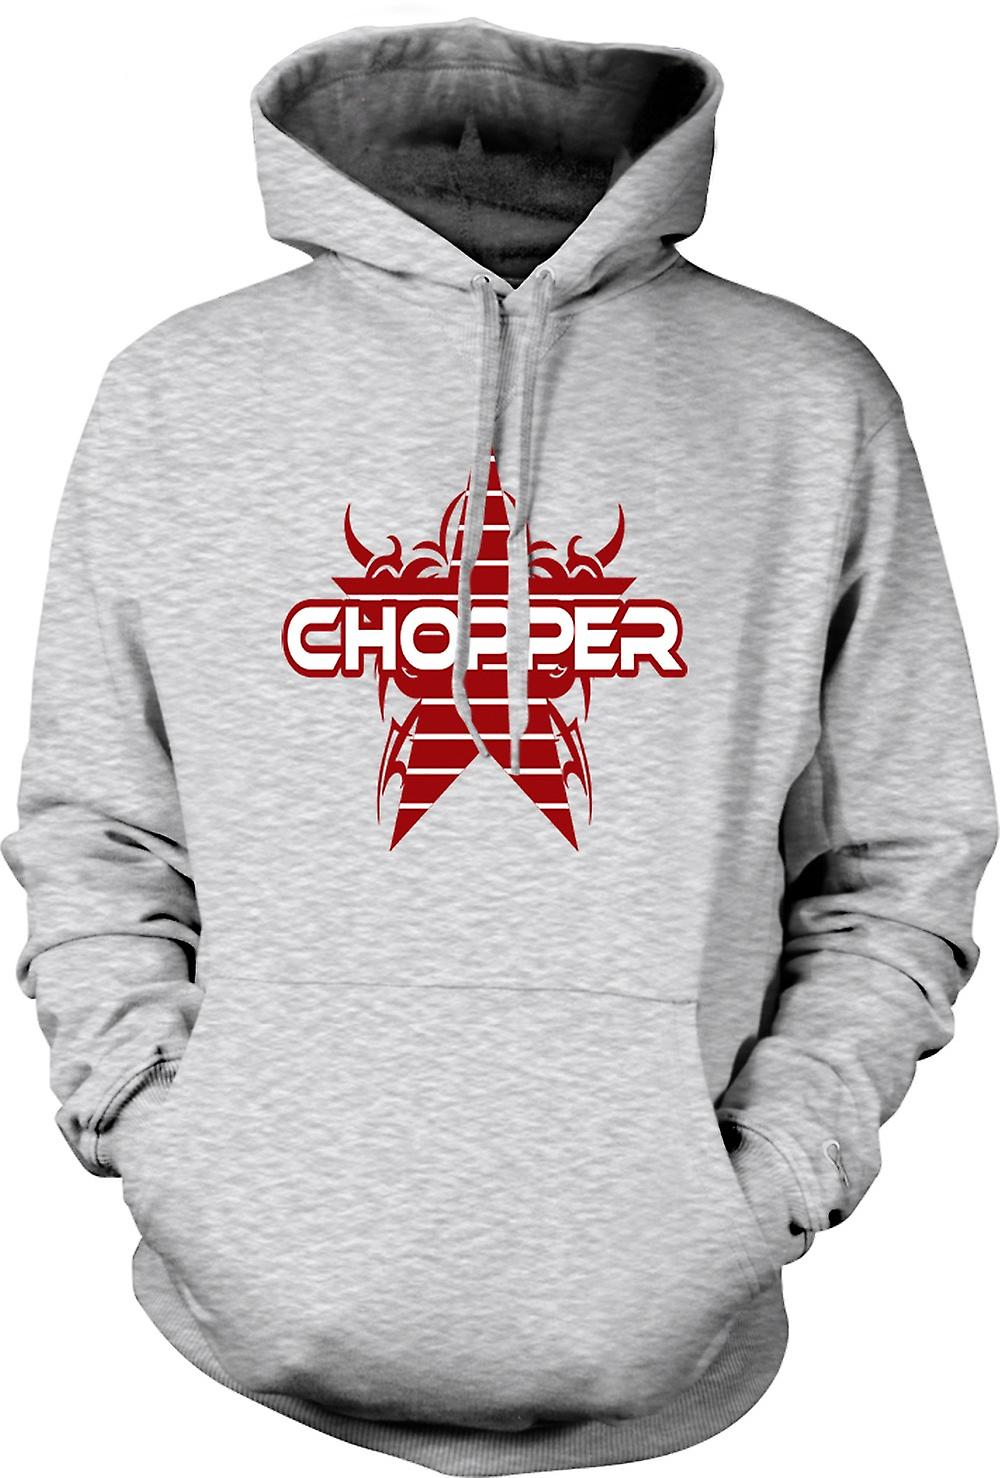 Mens Hoodie - Chopper Bike retrò - Funny